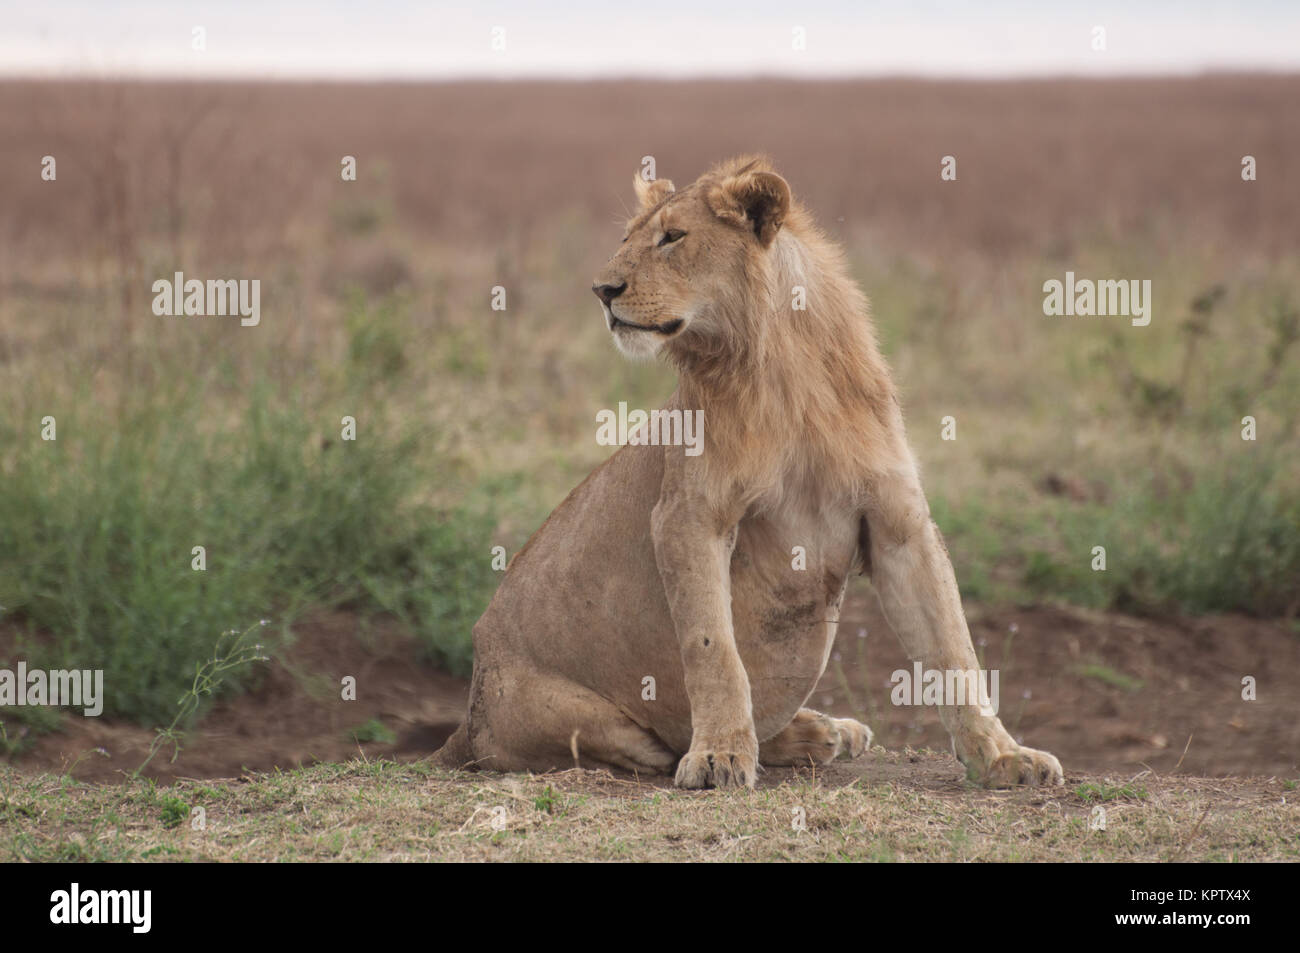 Pregnant Lioness in the Serengetti. - Stock Image